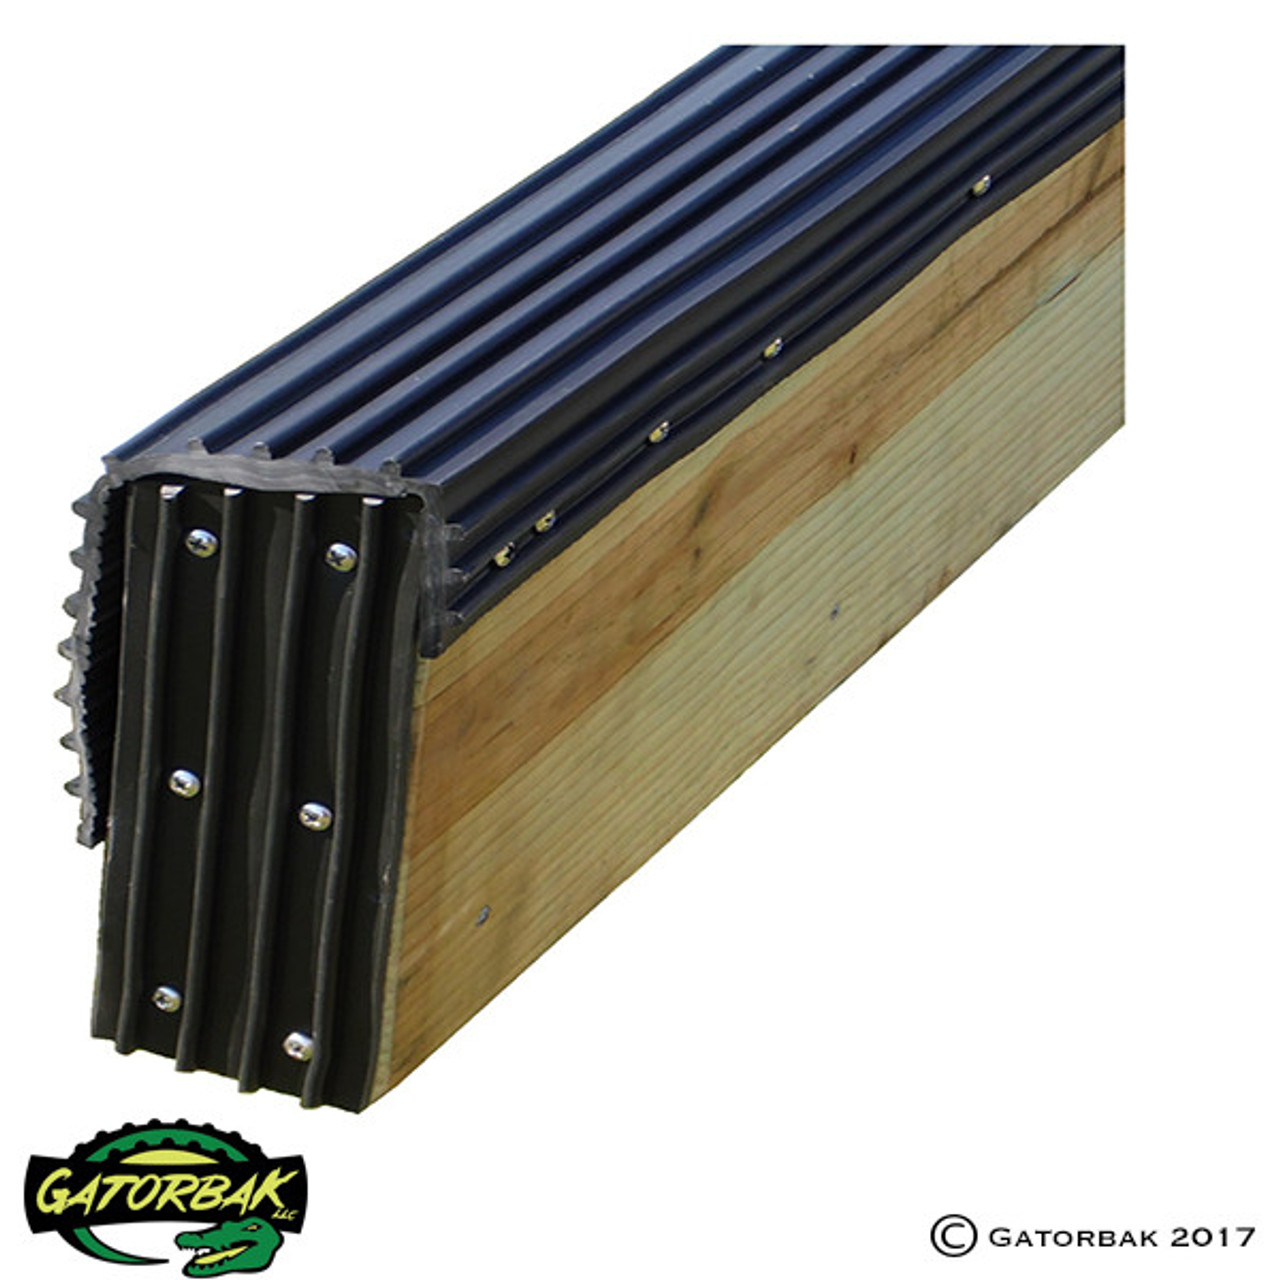 GB7 Large Beam Bunk Cover Kits